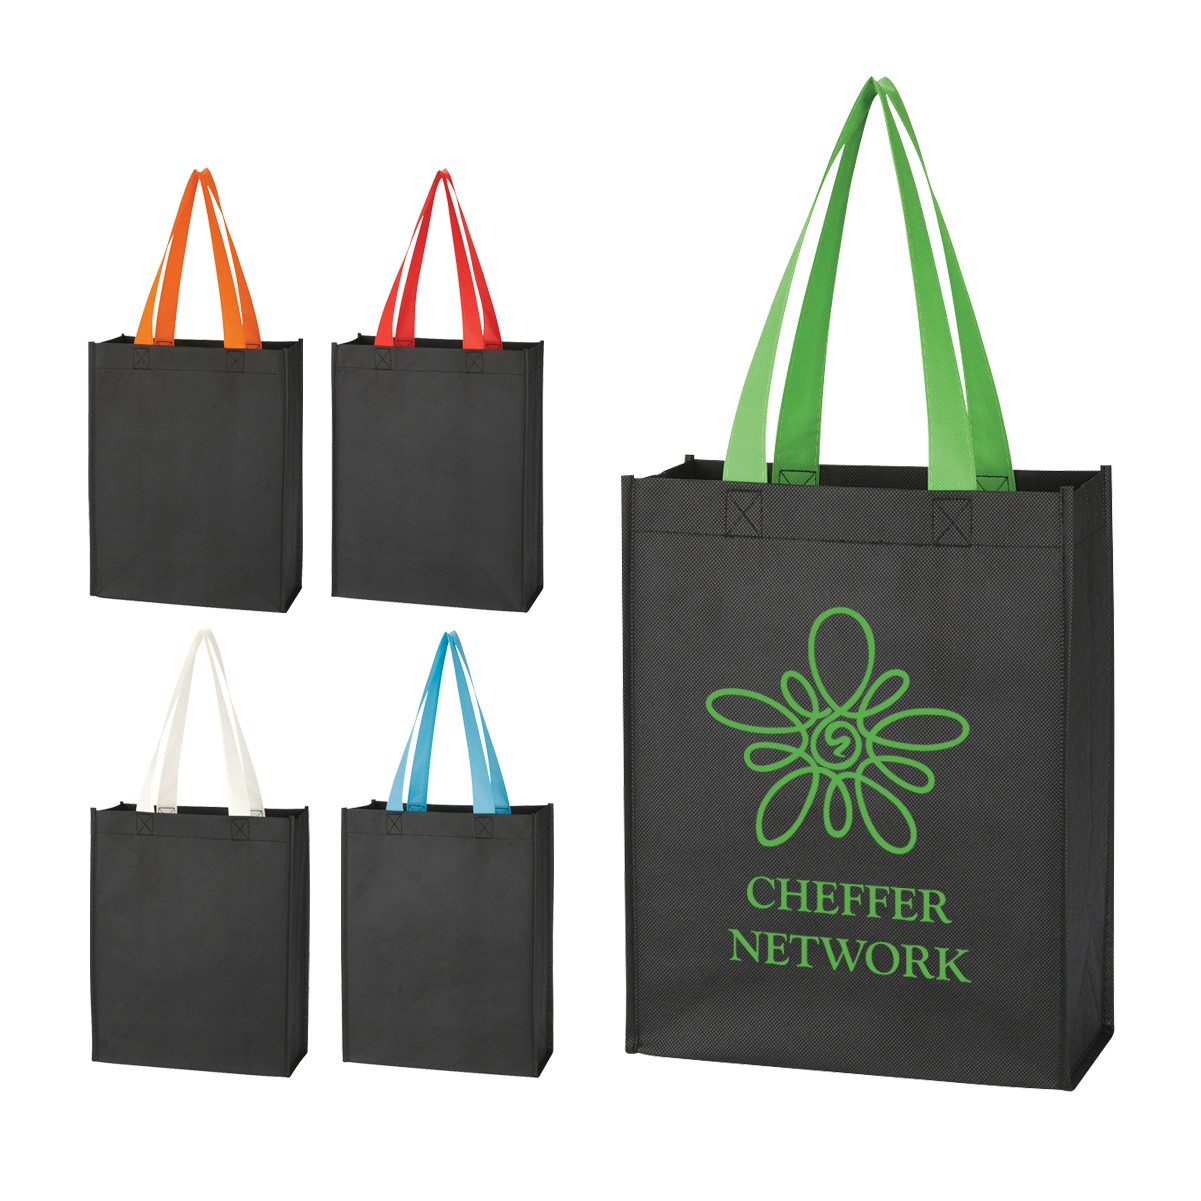 Non-Woven Mini Tote Bag,Promotional Mini Tote Bag, Non-Woven Mini Tote Bag supplier